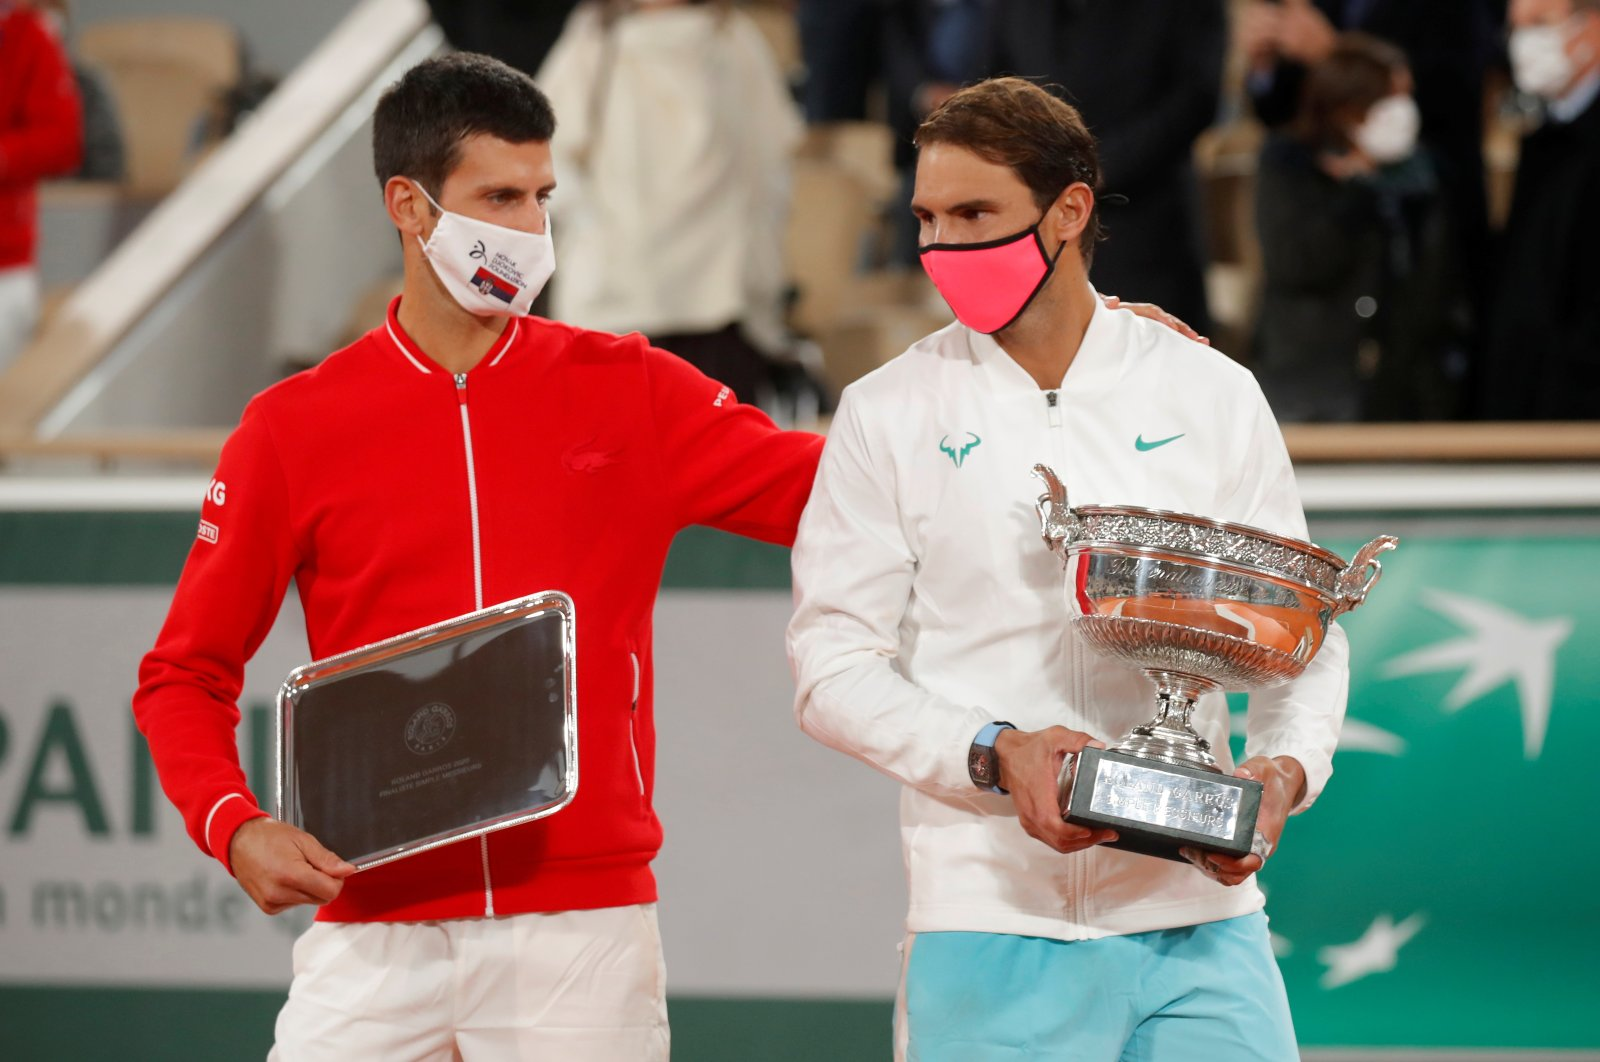 French Open winner Rafael Nadal of Spain and Runner up Novak Djokovic of Serbia with their trophies after the French Open final, Roland Garros, Paris, France, Oct. 11, 2020. (Reuters Photo)